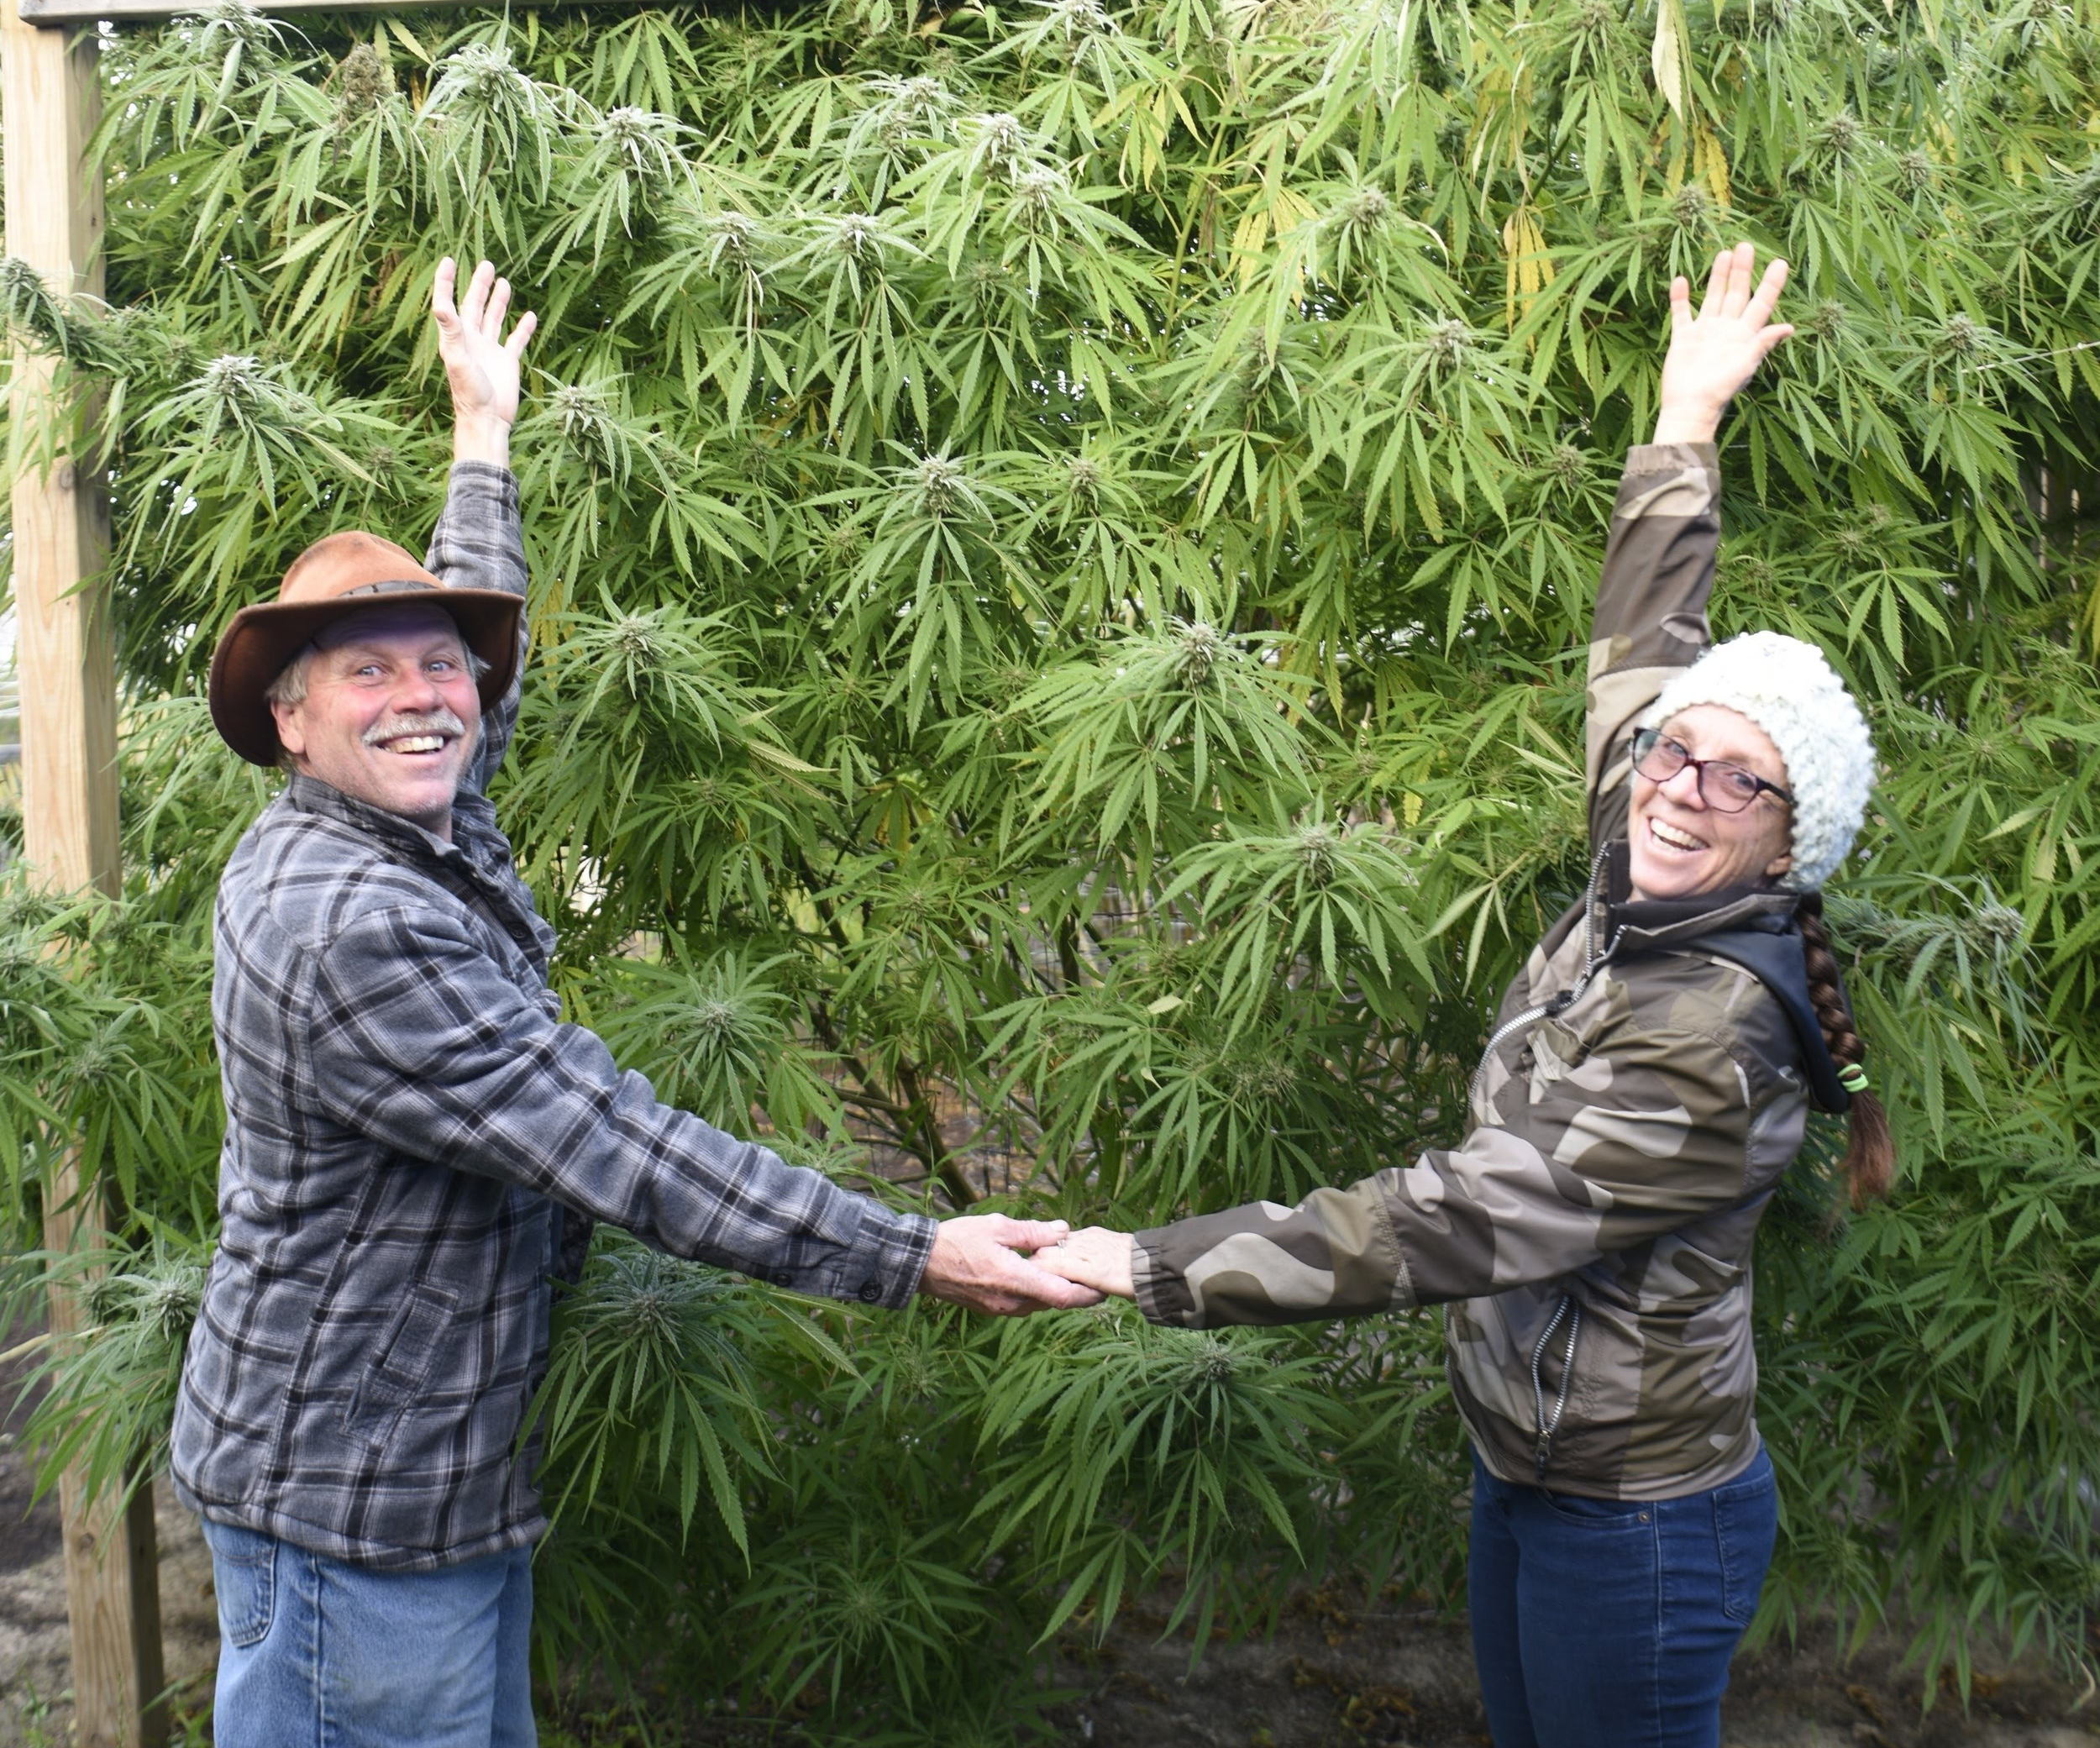 Our Team - Stephanie and Paul are the duo behind Mitten Mama Meds. Paul is a lifelong farmer and outdoorsman and Stephanie has raised and nurtured every kind of plant you can think of (and a few kids and dogs, too). They're on a mission to help people discover the power and potential of cannabis treatments.